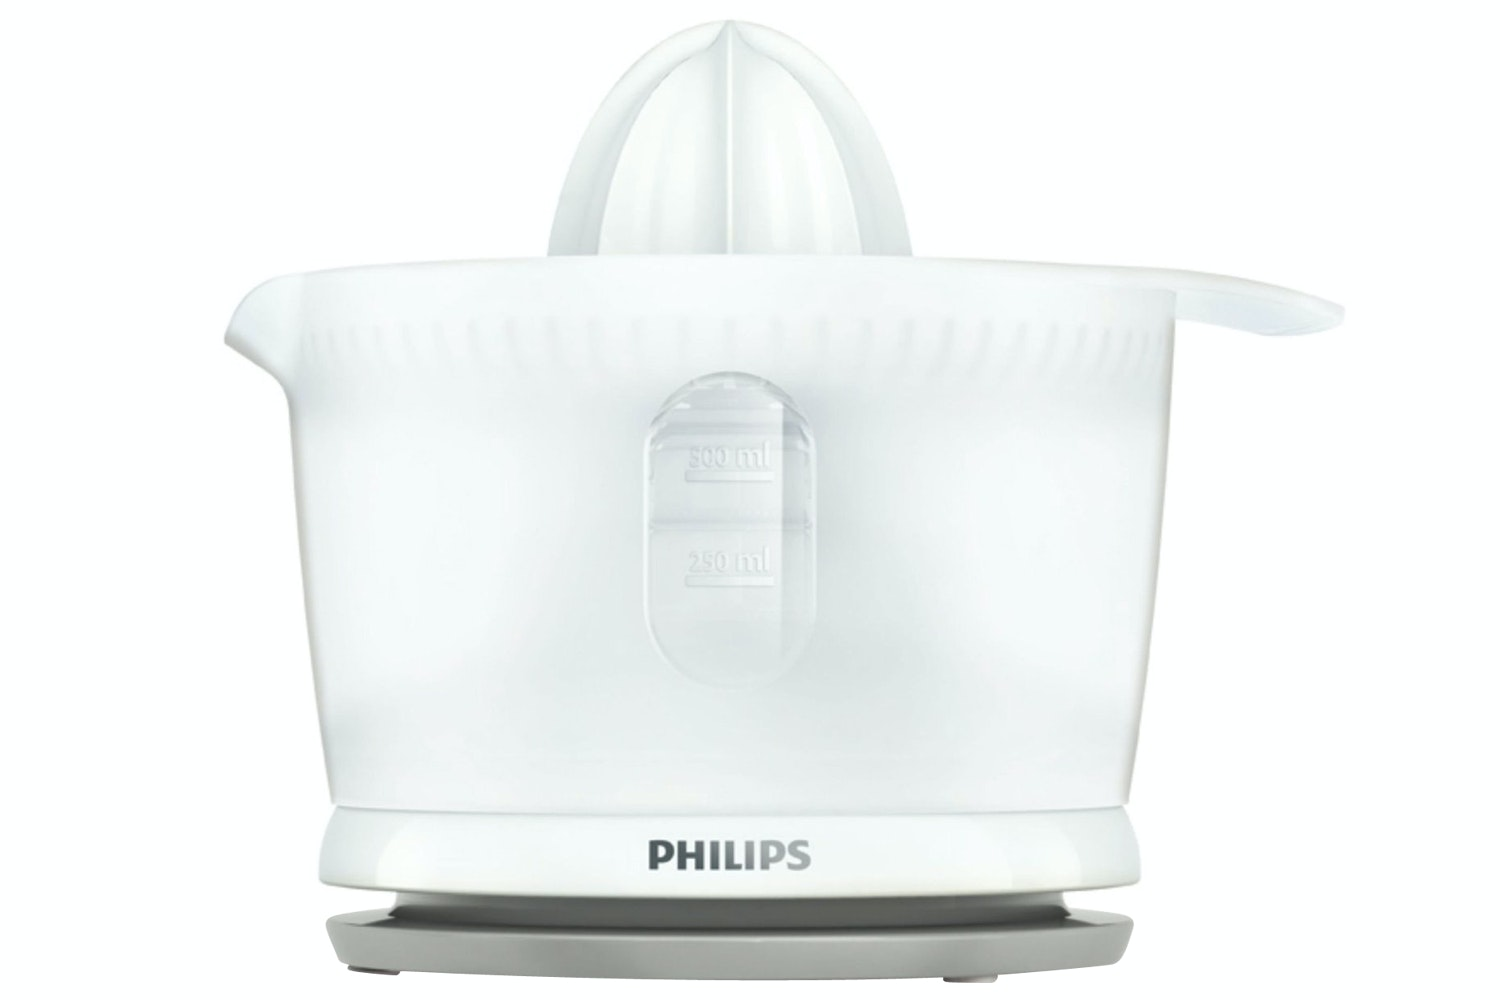 Philips White Citrus Press Juicer